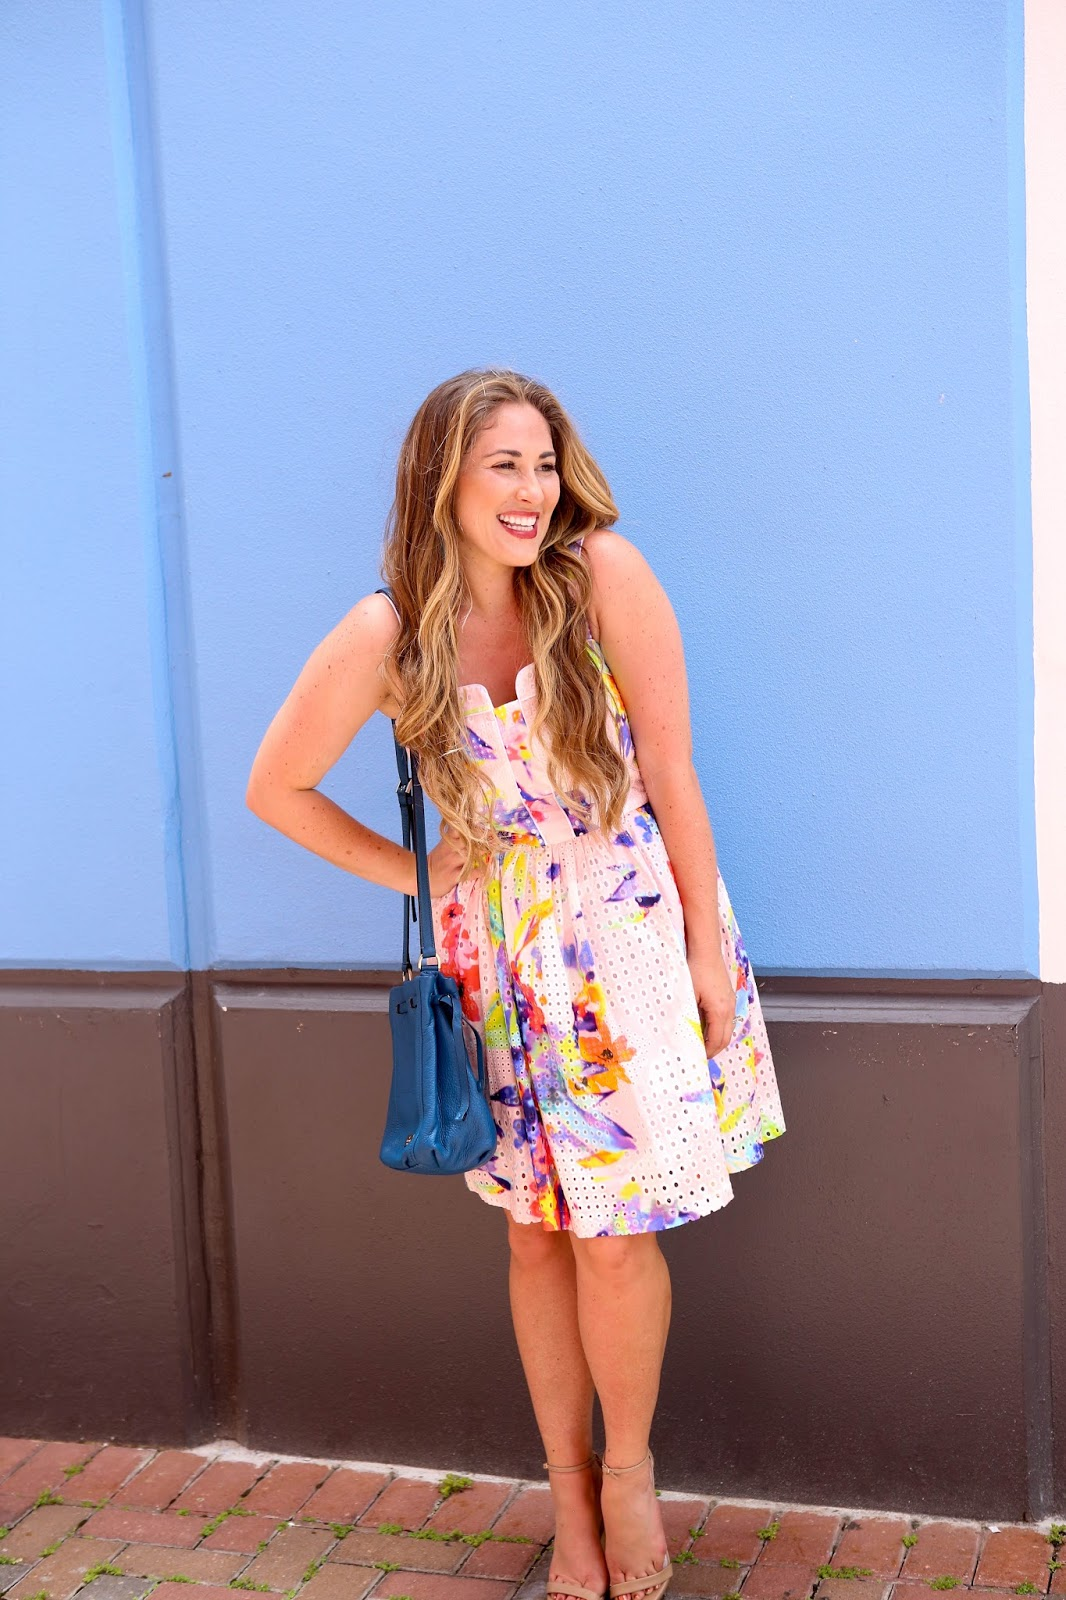 Trend Spin Linkup - Cute Summer Dress with Current Boutique by fashion blogger Walking in Memphis in High Heels